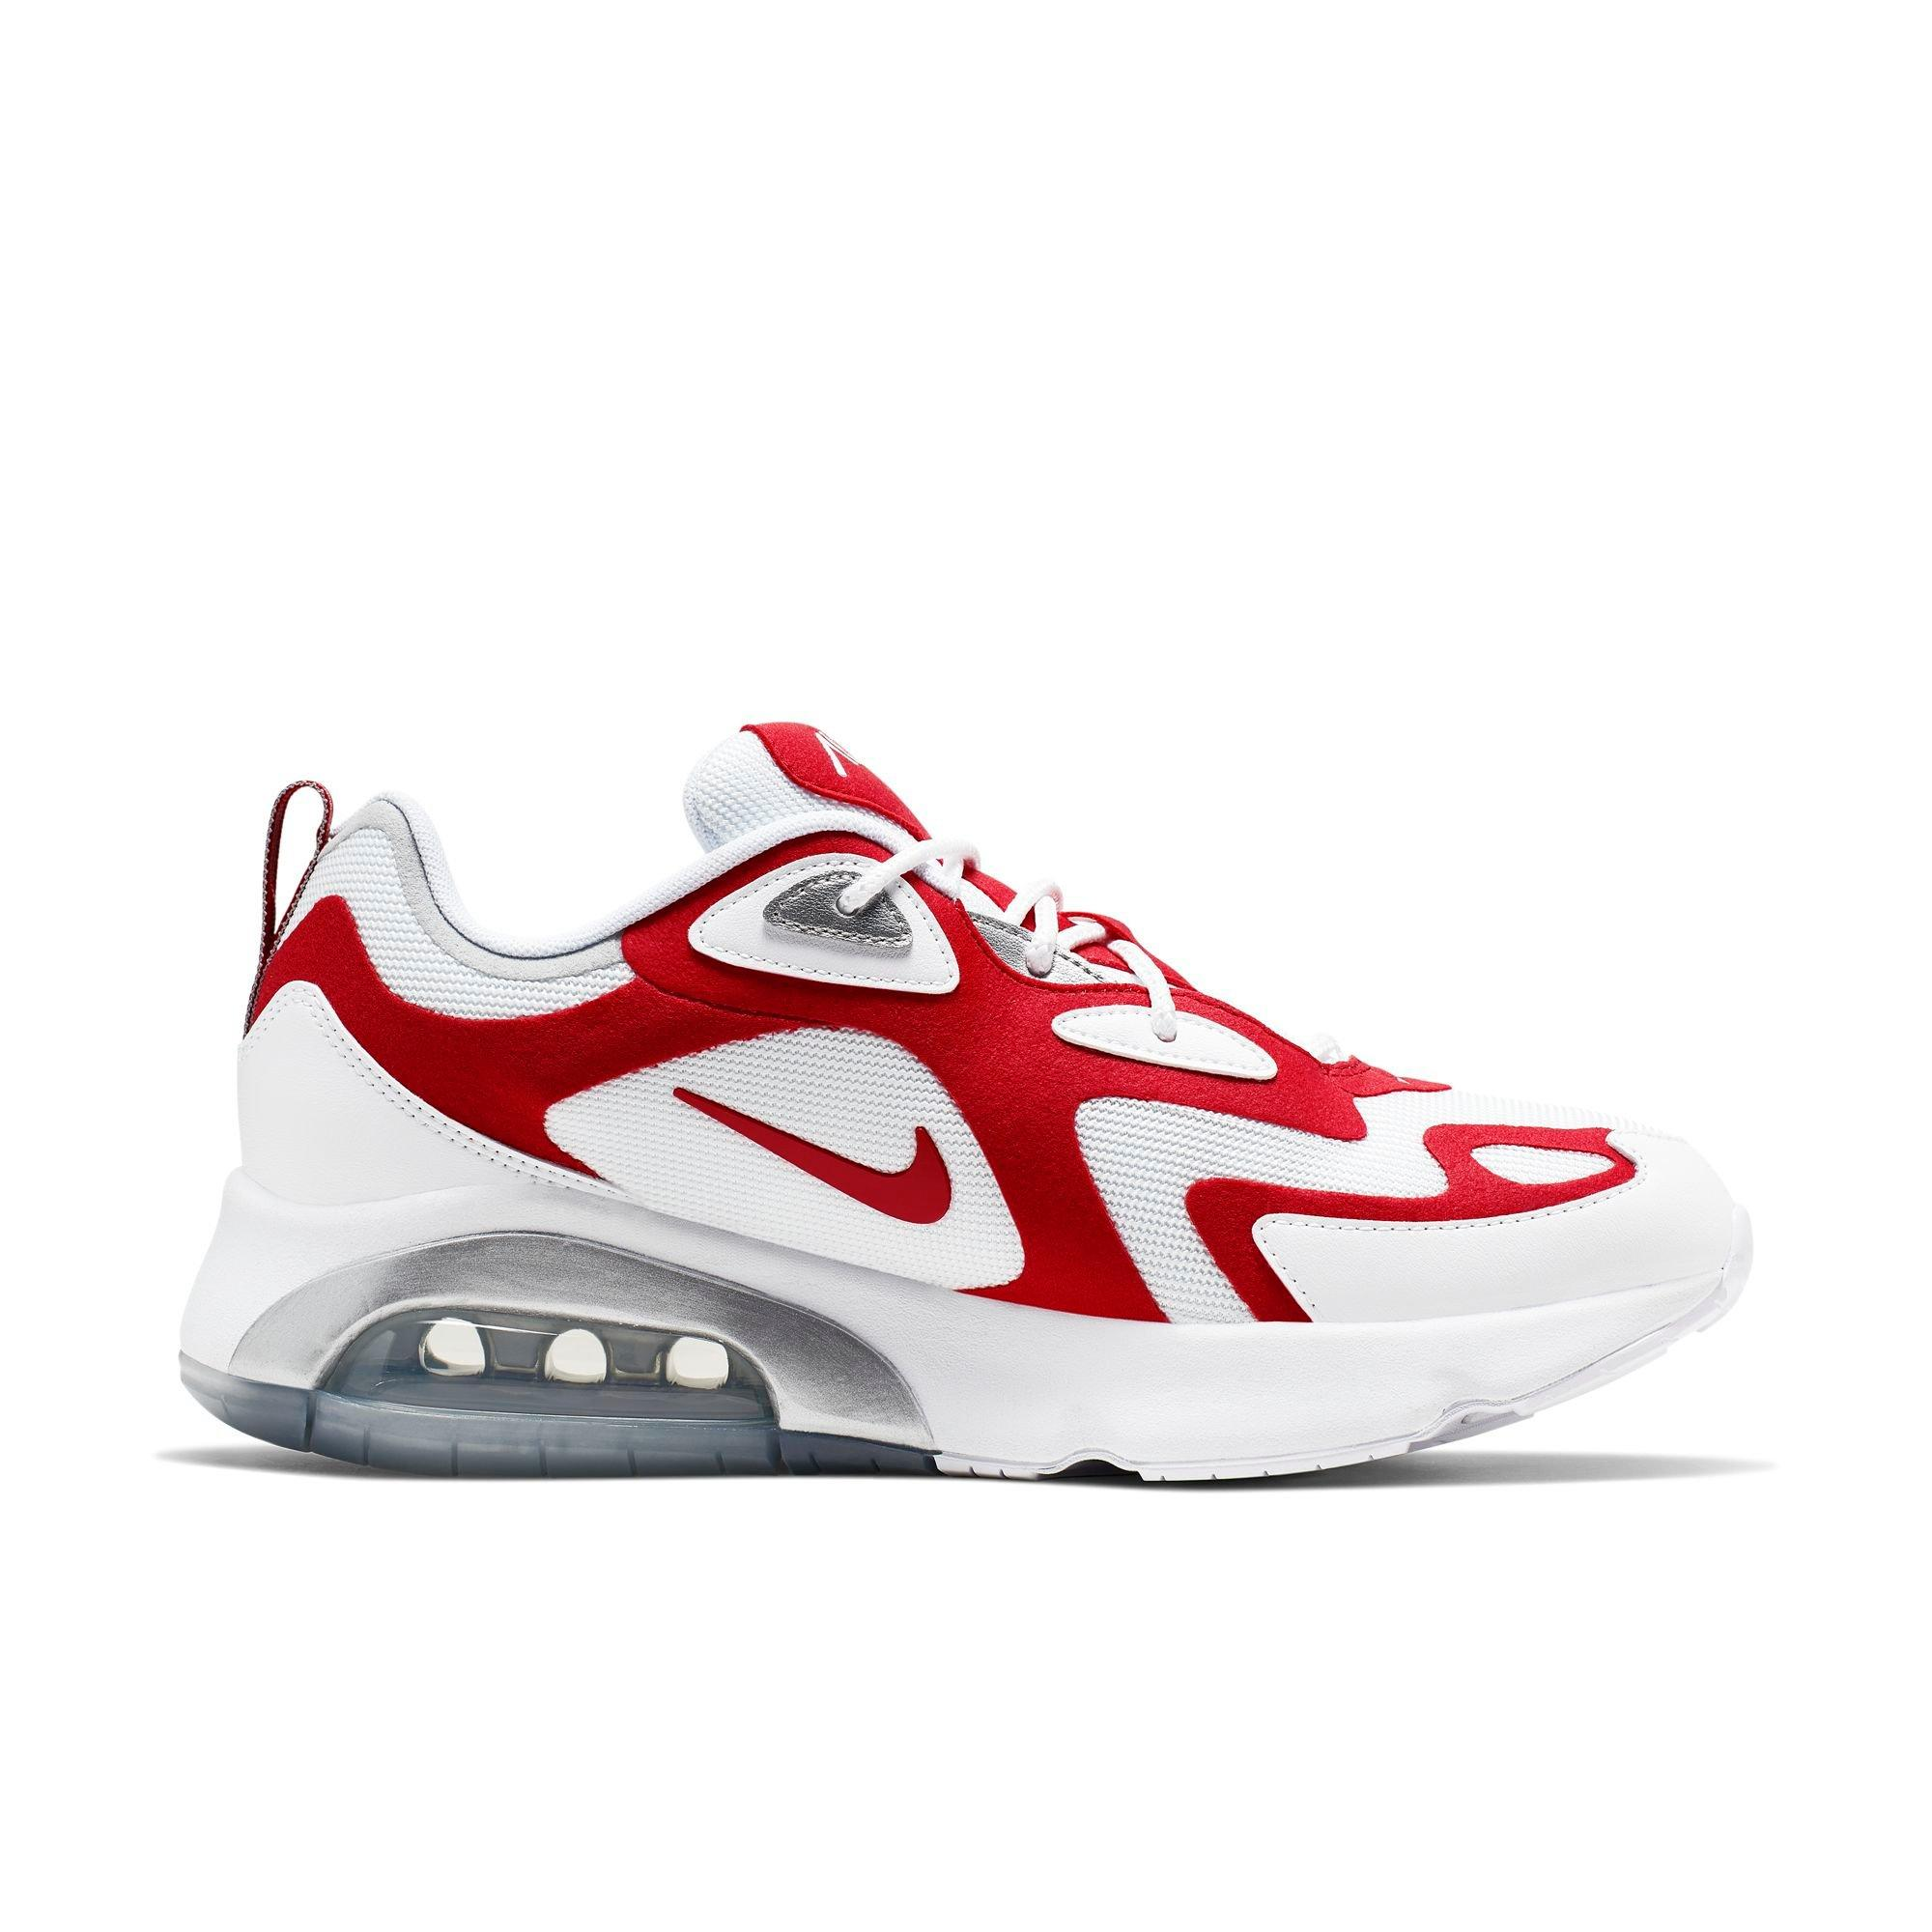 white and red air maxes